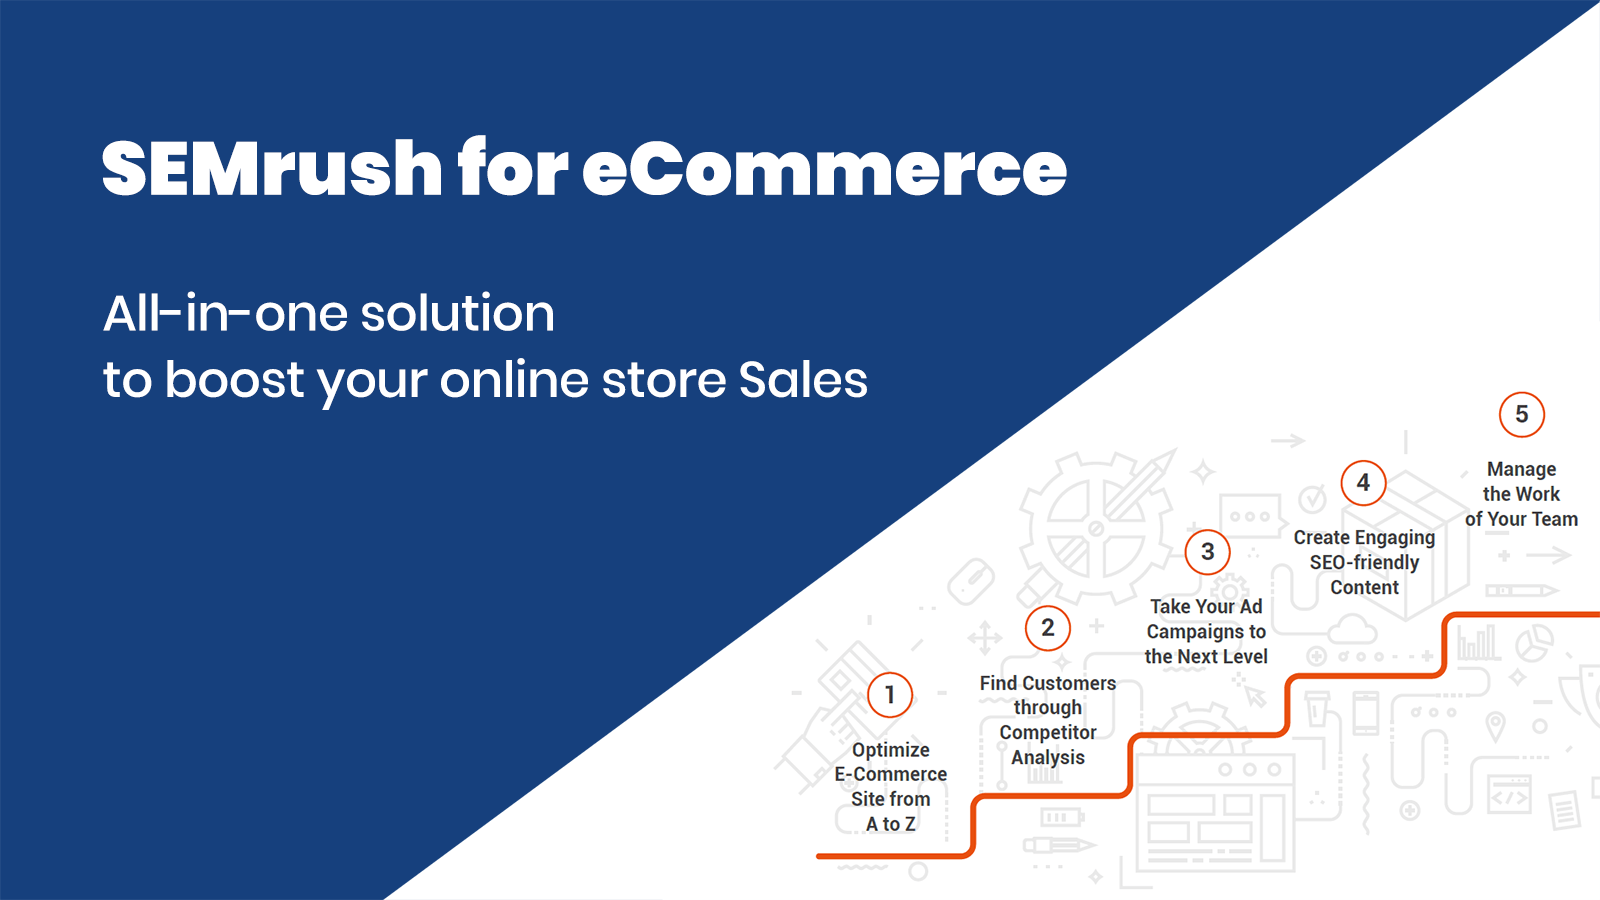 semrush for ecommerce, online stores featured image